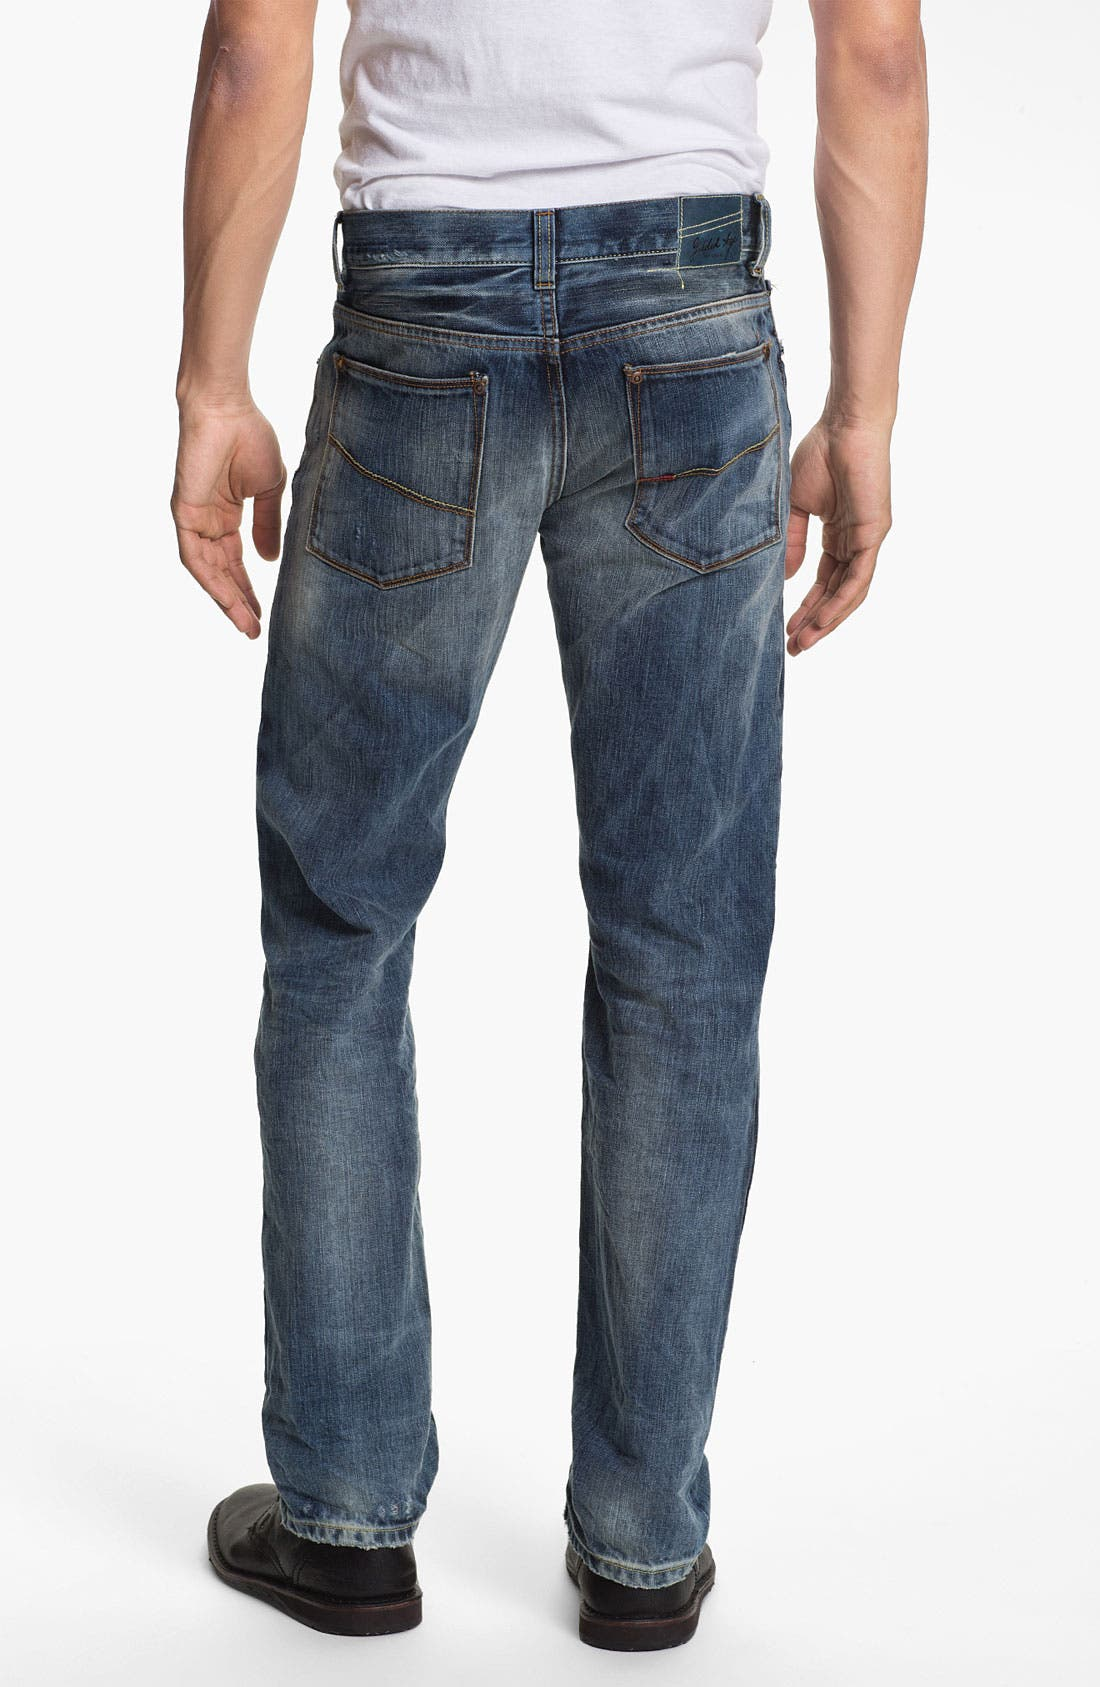 Alternate Image 1 Selected - Gilded Age 'Baxten' Slim Fit Jeans (Light)